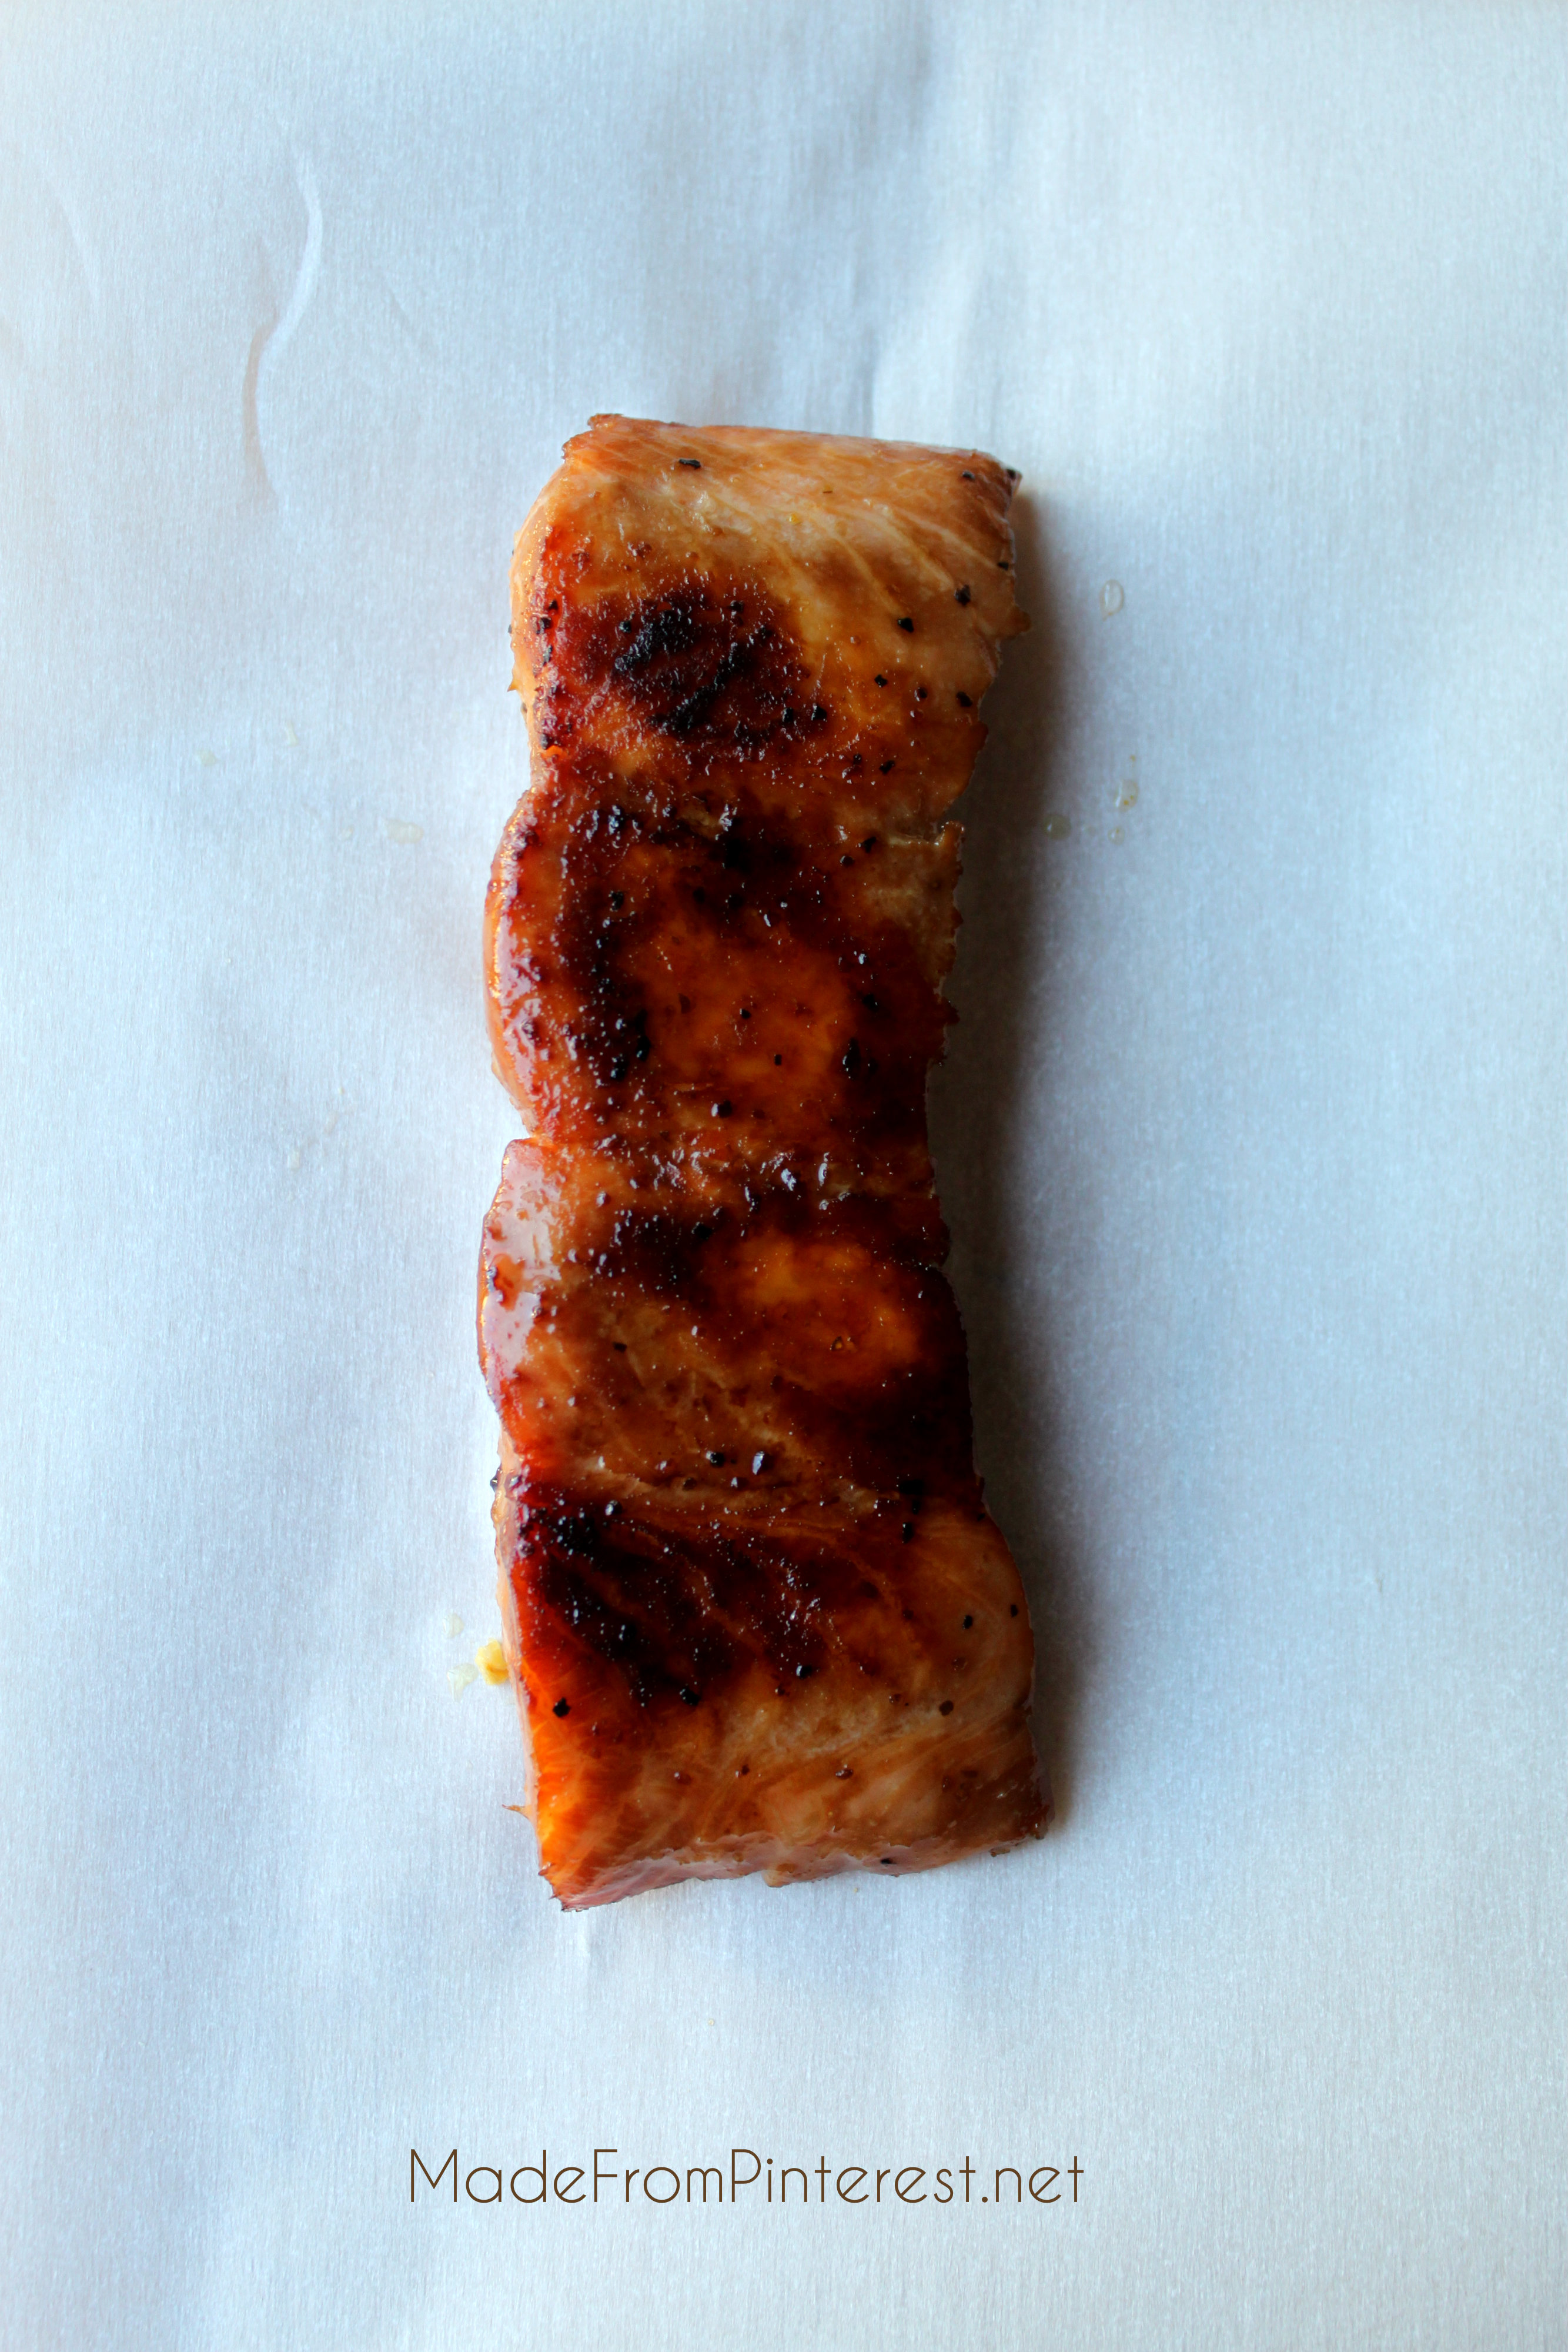 Marinated Salmon Wrap In Foil And Bake For 15 Minutes An Easy, Elegant